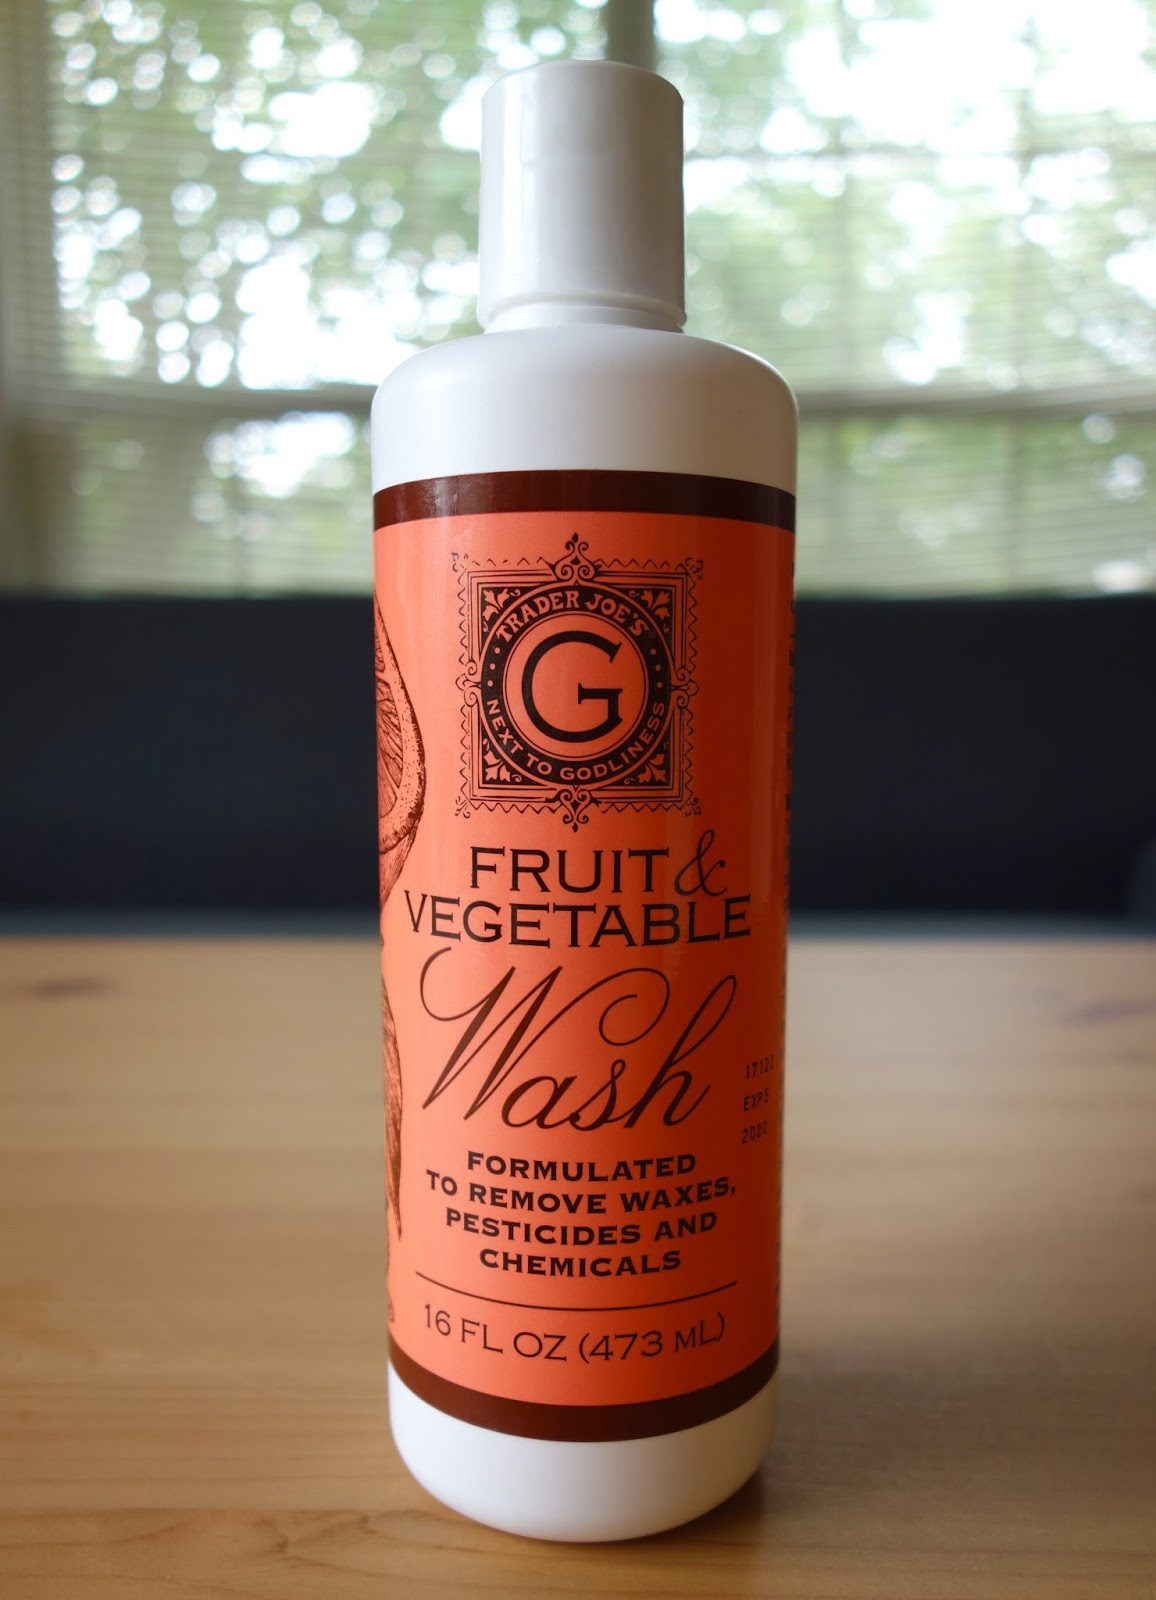 Trader Joe's [Next to Godliness] Fruit & Vegetable Wash